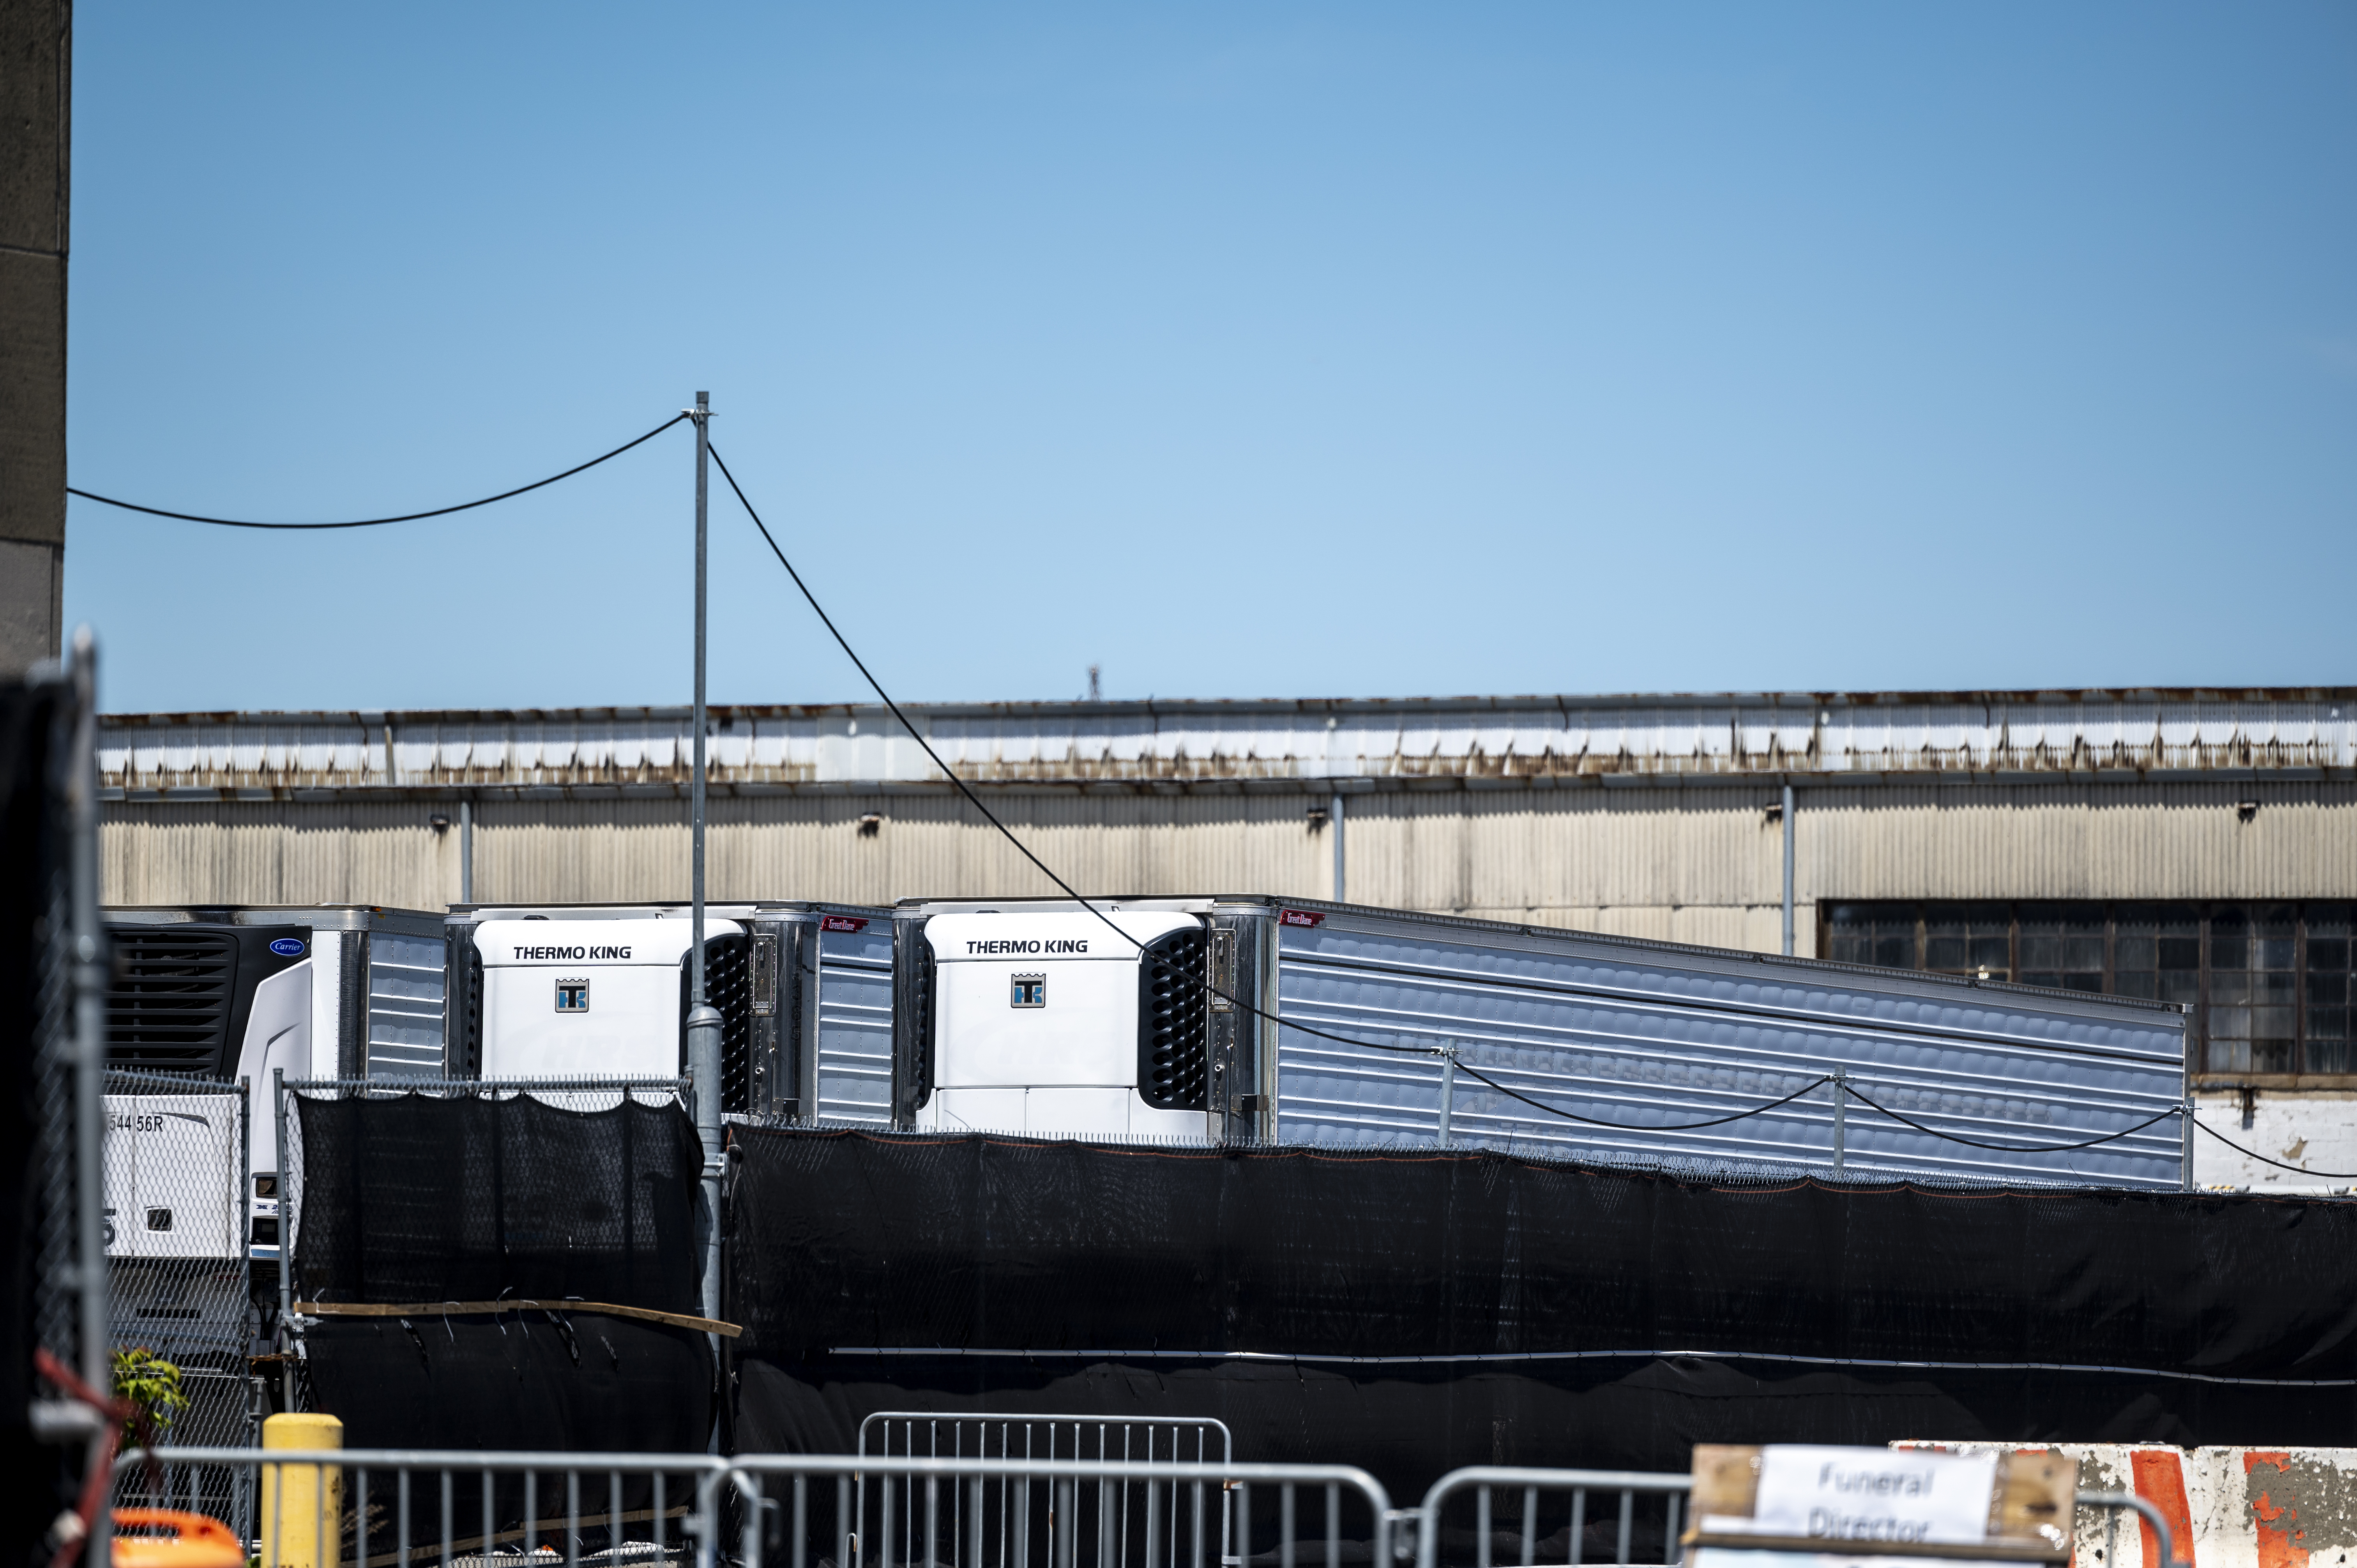 A fleet of refrigerated trucks storing the bodies of people who died of COVID-19 sits near the Brooklyn waterfront in Sunset Park on Thursday, May 6, 2021.